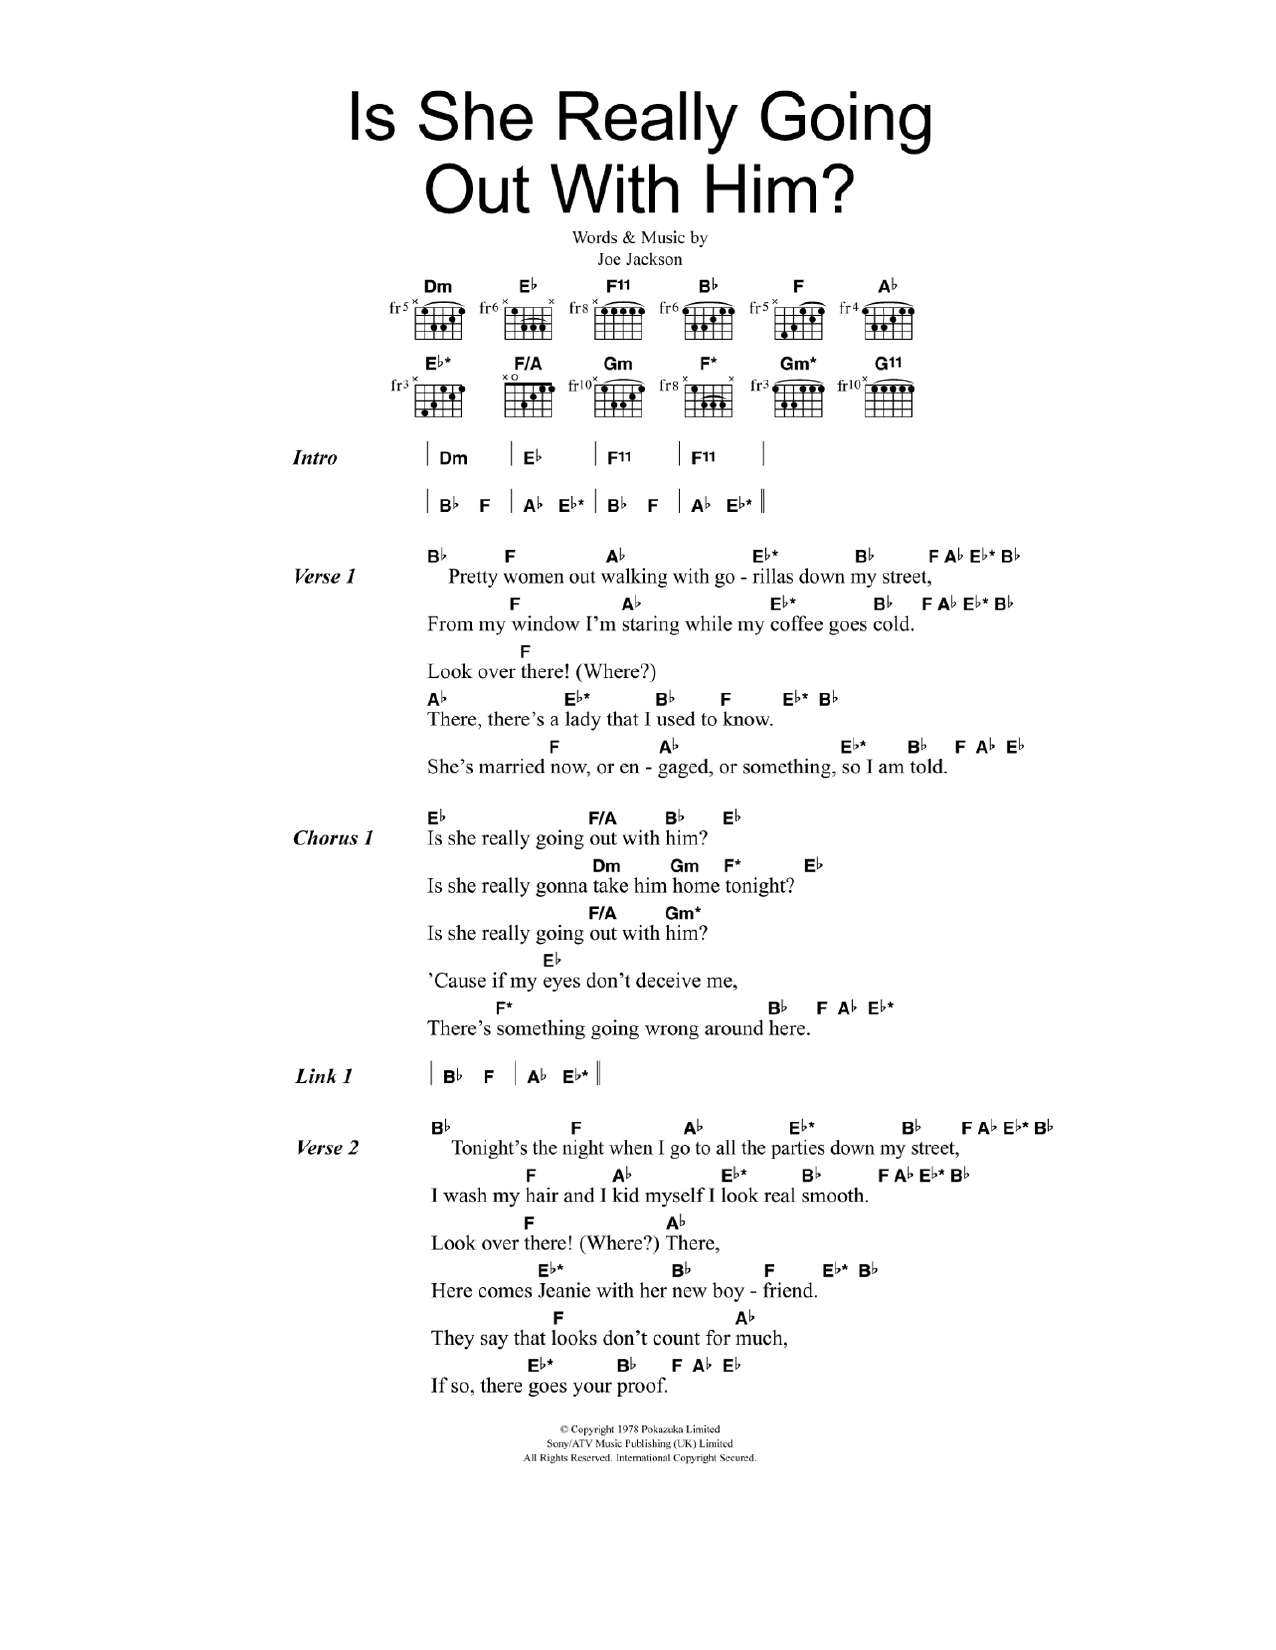 Is She Really Going Out With Him? Sheet Music